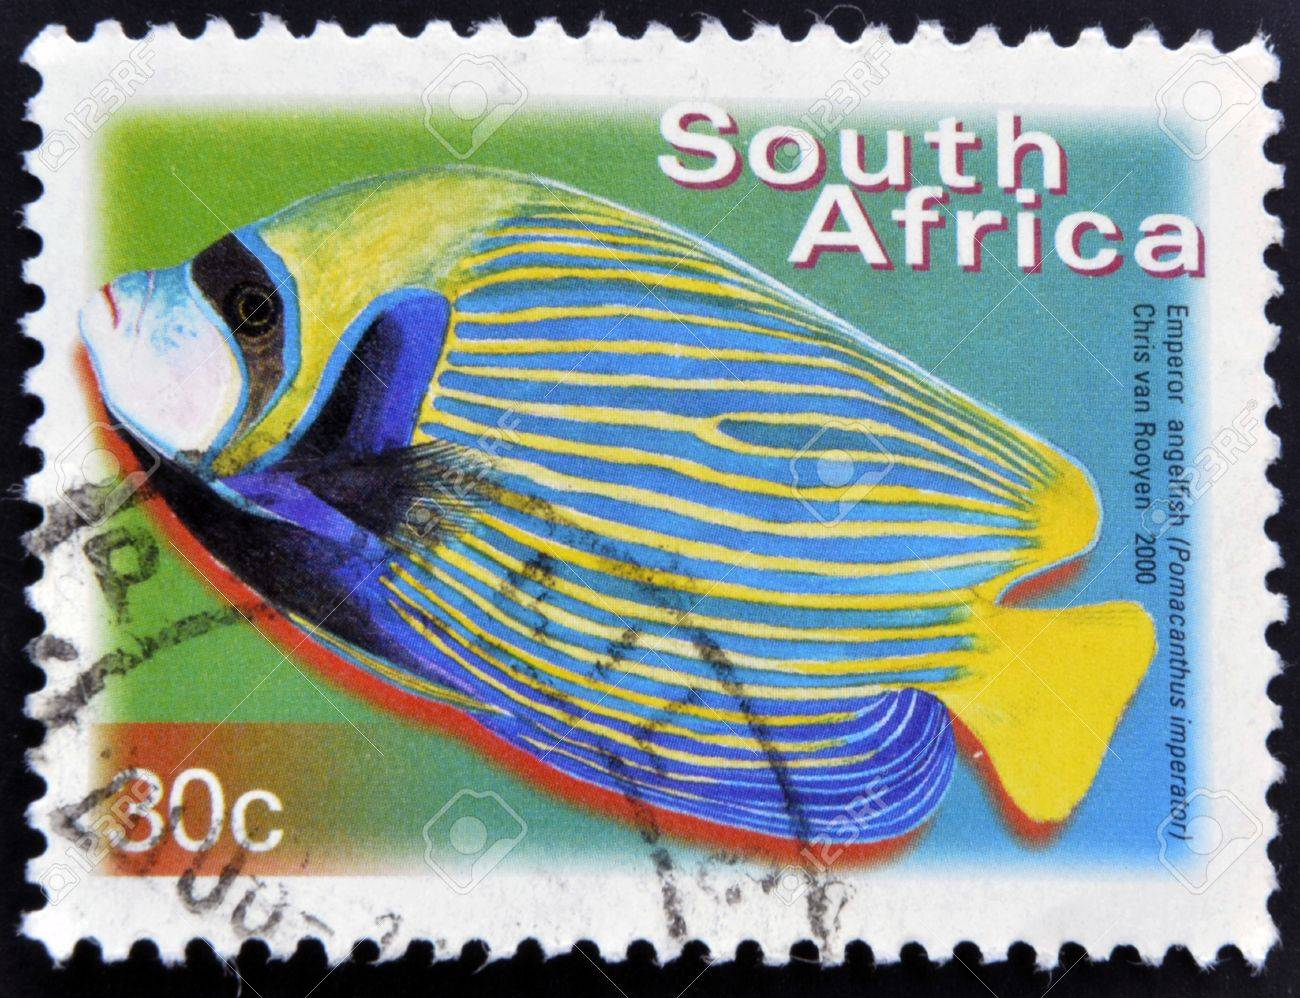 SOUTH AFRICA - CIRCA 2000: A stamp printed in RSA shows emperor angelfish, Pomacanthus imperator, circa 2000 Stock Photo - 16959210